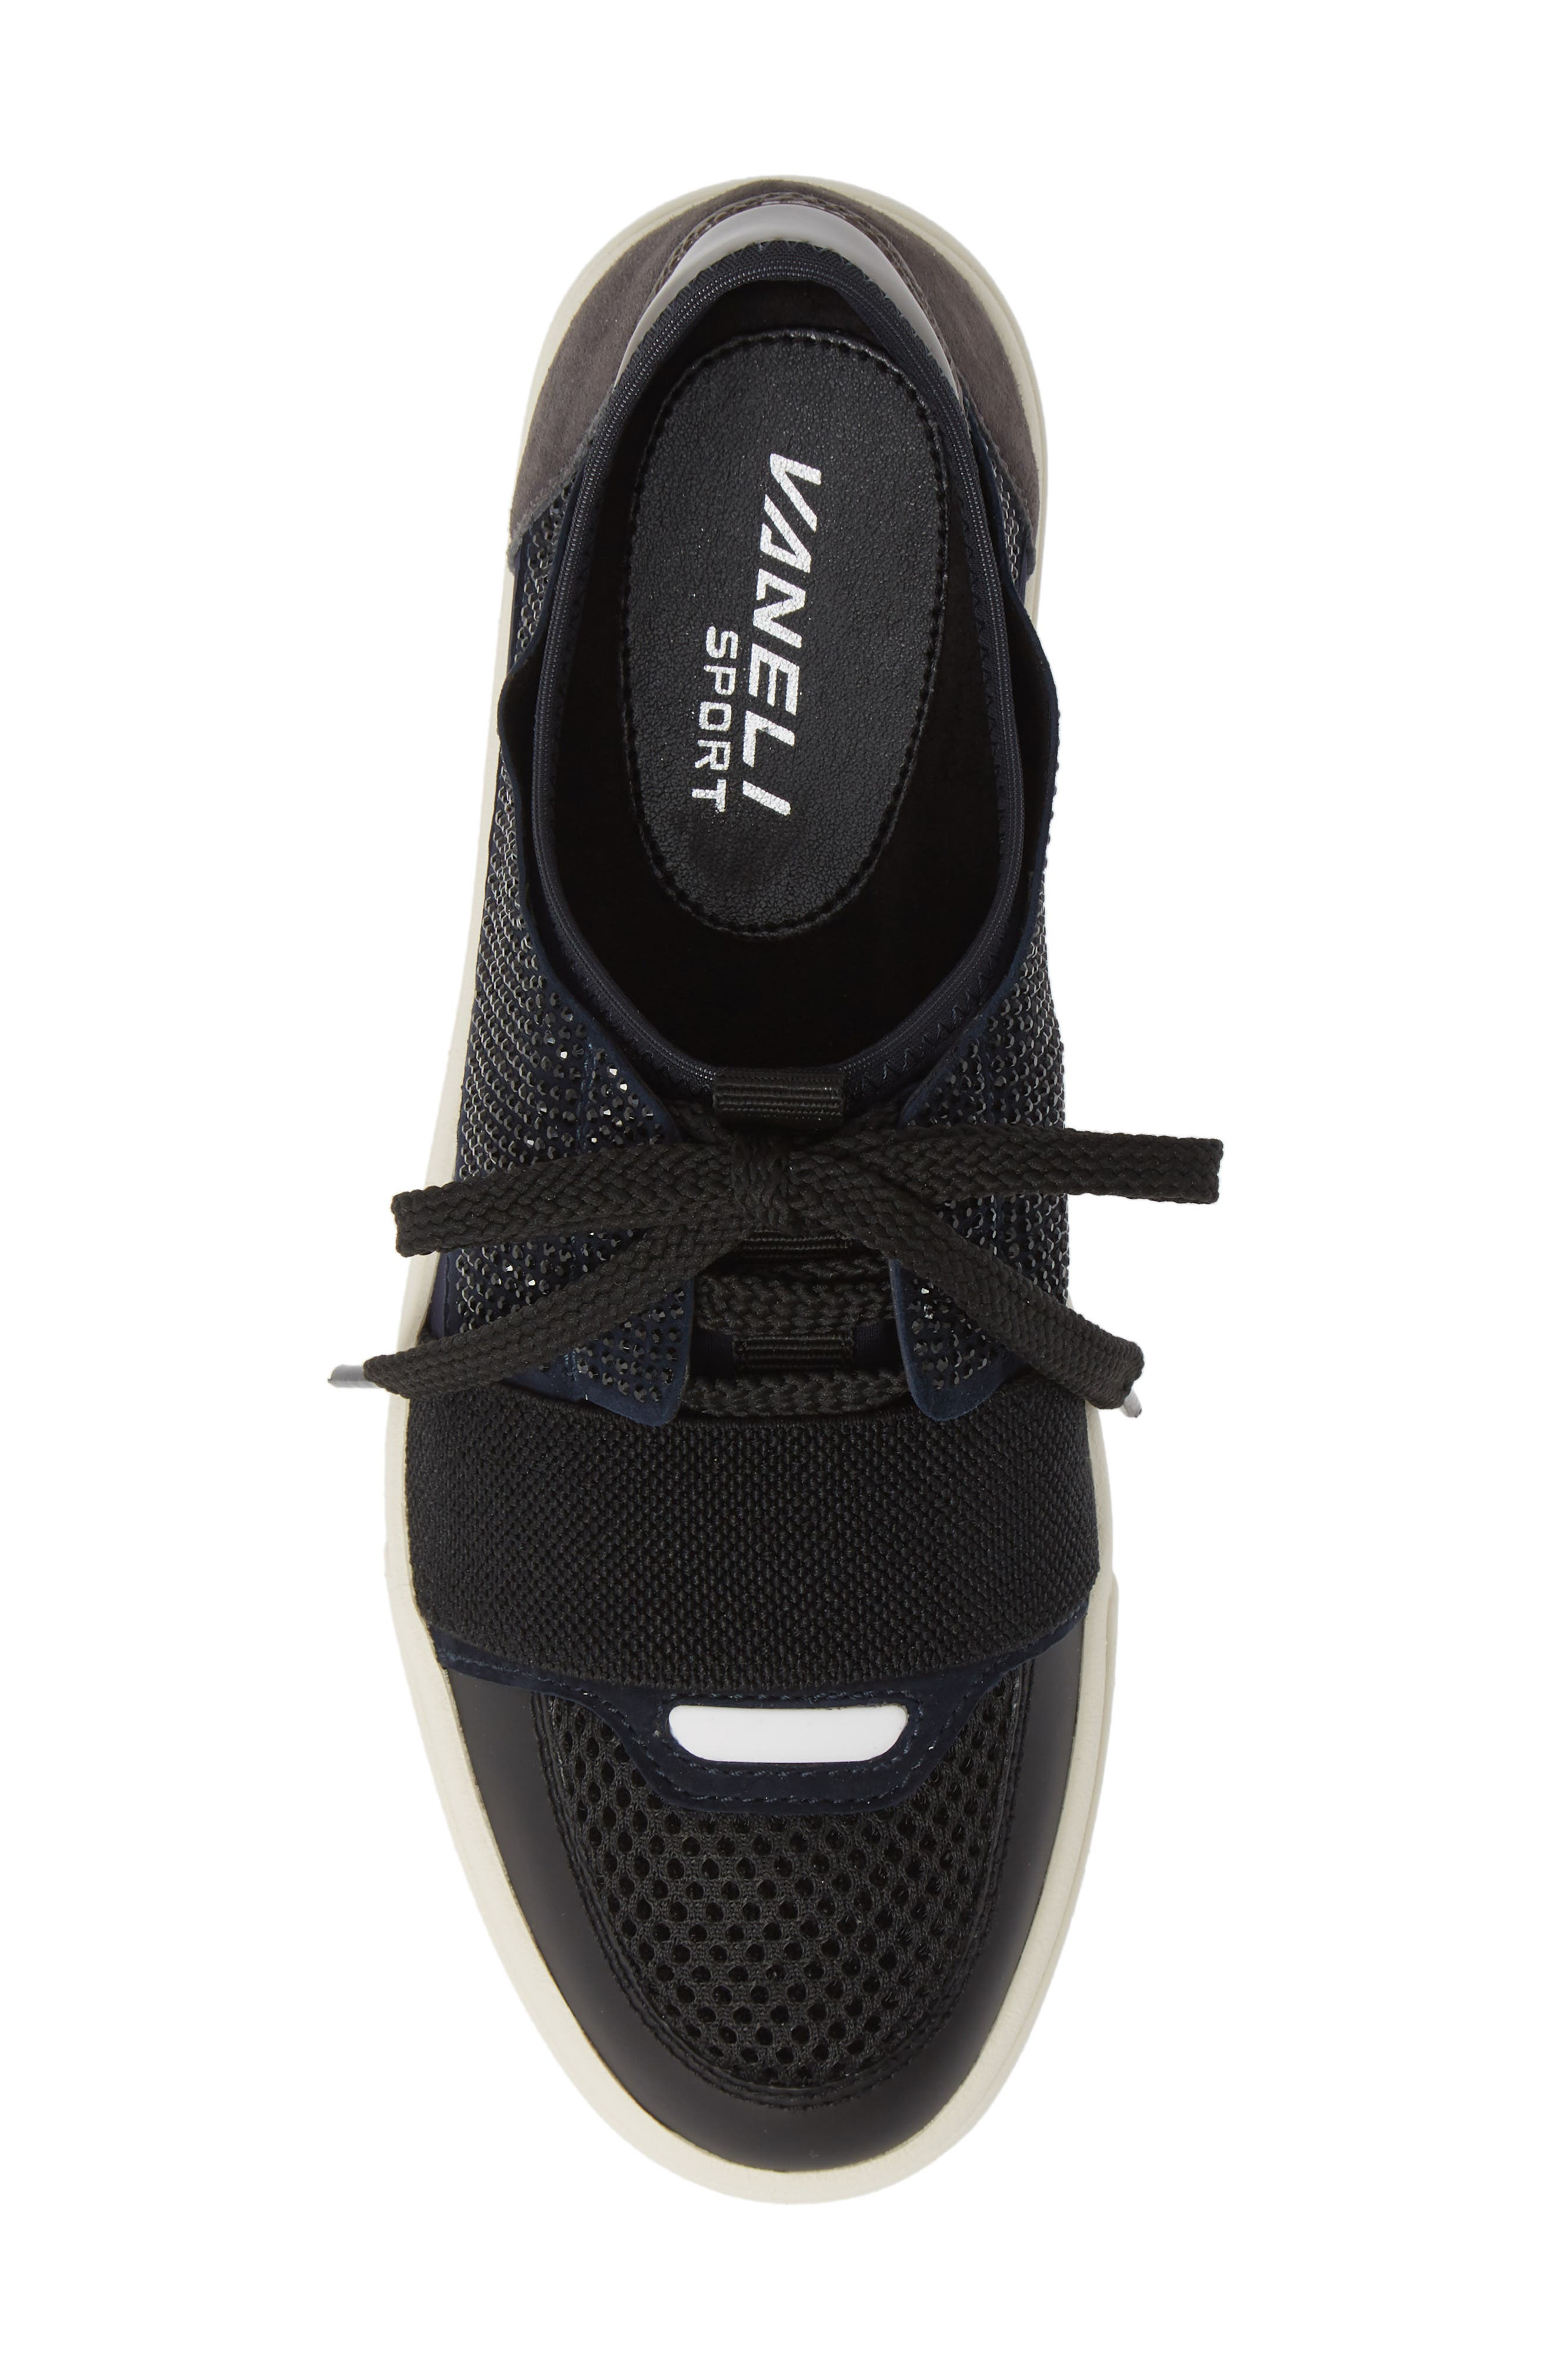 Onella Lace-Up Sneaker,                             Alternate thumbnail 5, color,                             BLACK/ NAVY/ GREY MULTI